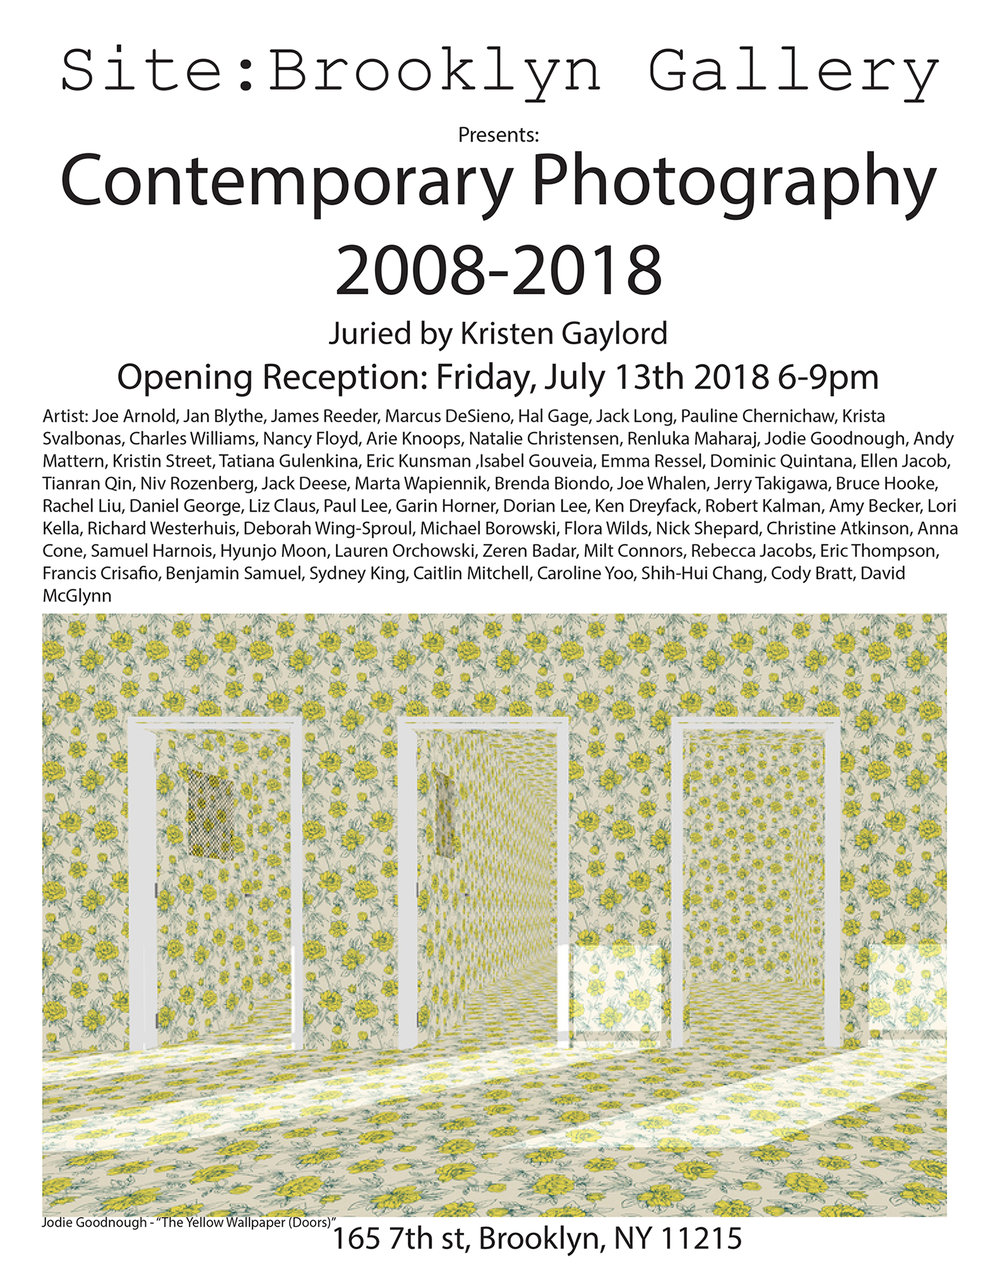 SiteBrooklyn-Gallery-Contemporary-Photo-2008-2018_Poster.jpg